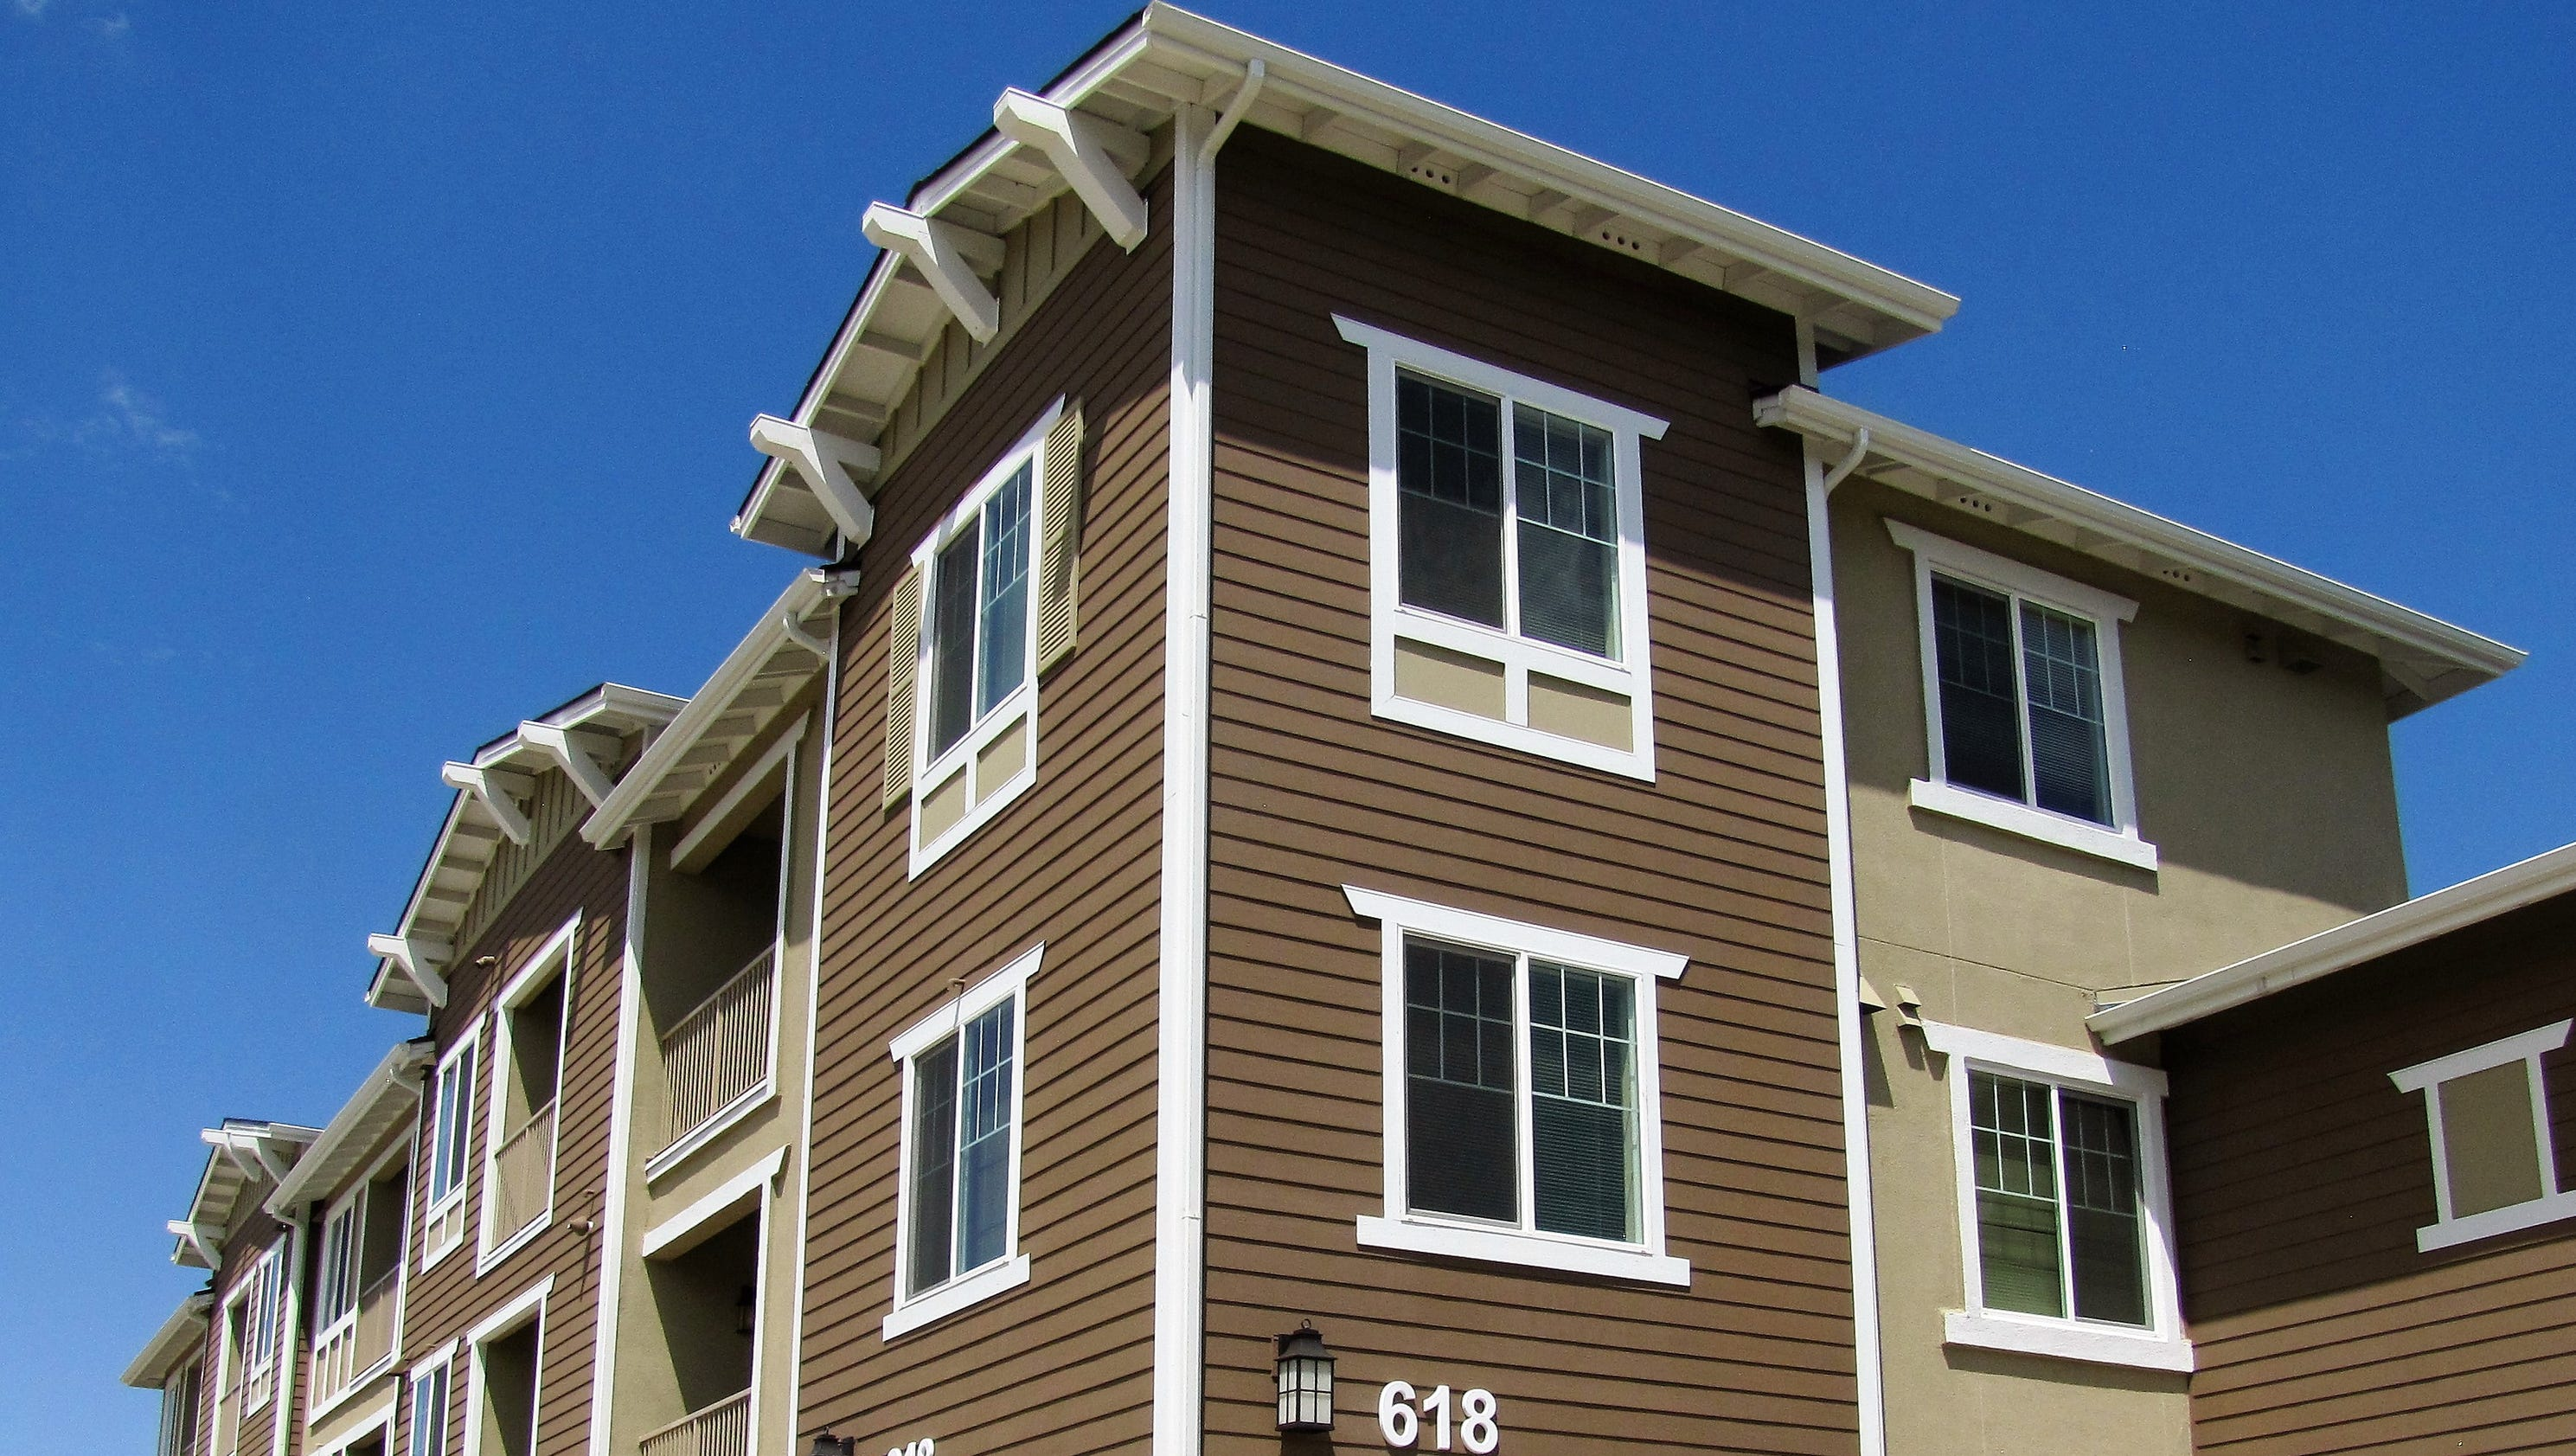 new senior living affordable housing plex opens monday in sparks